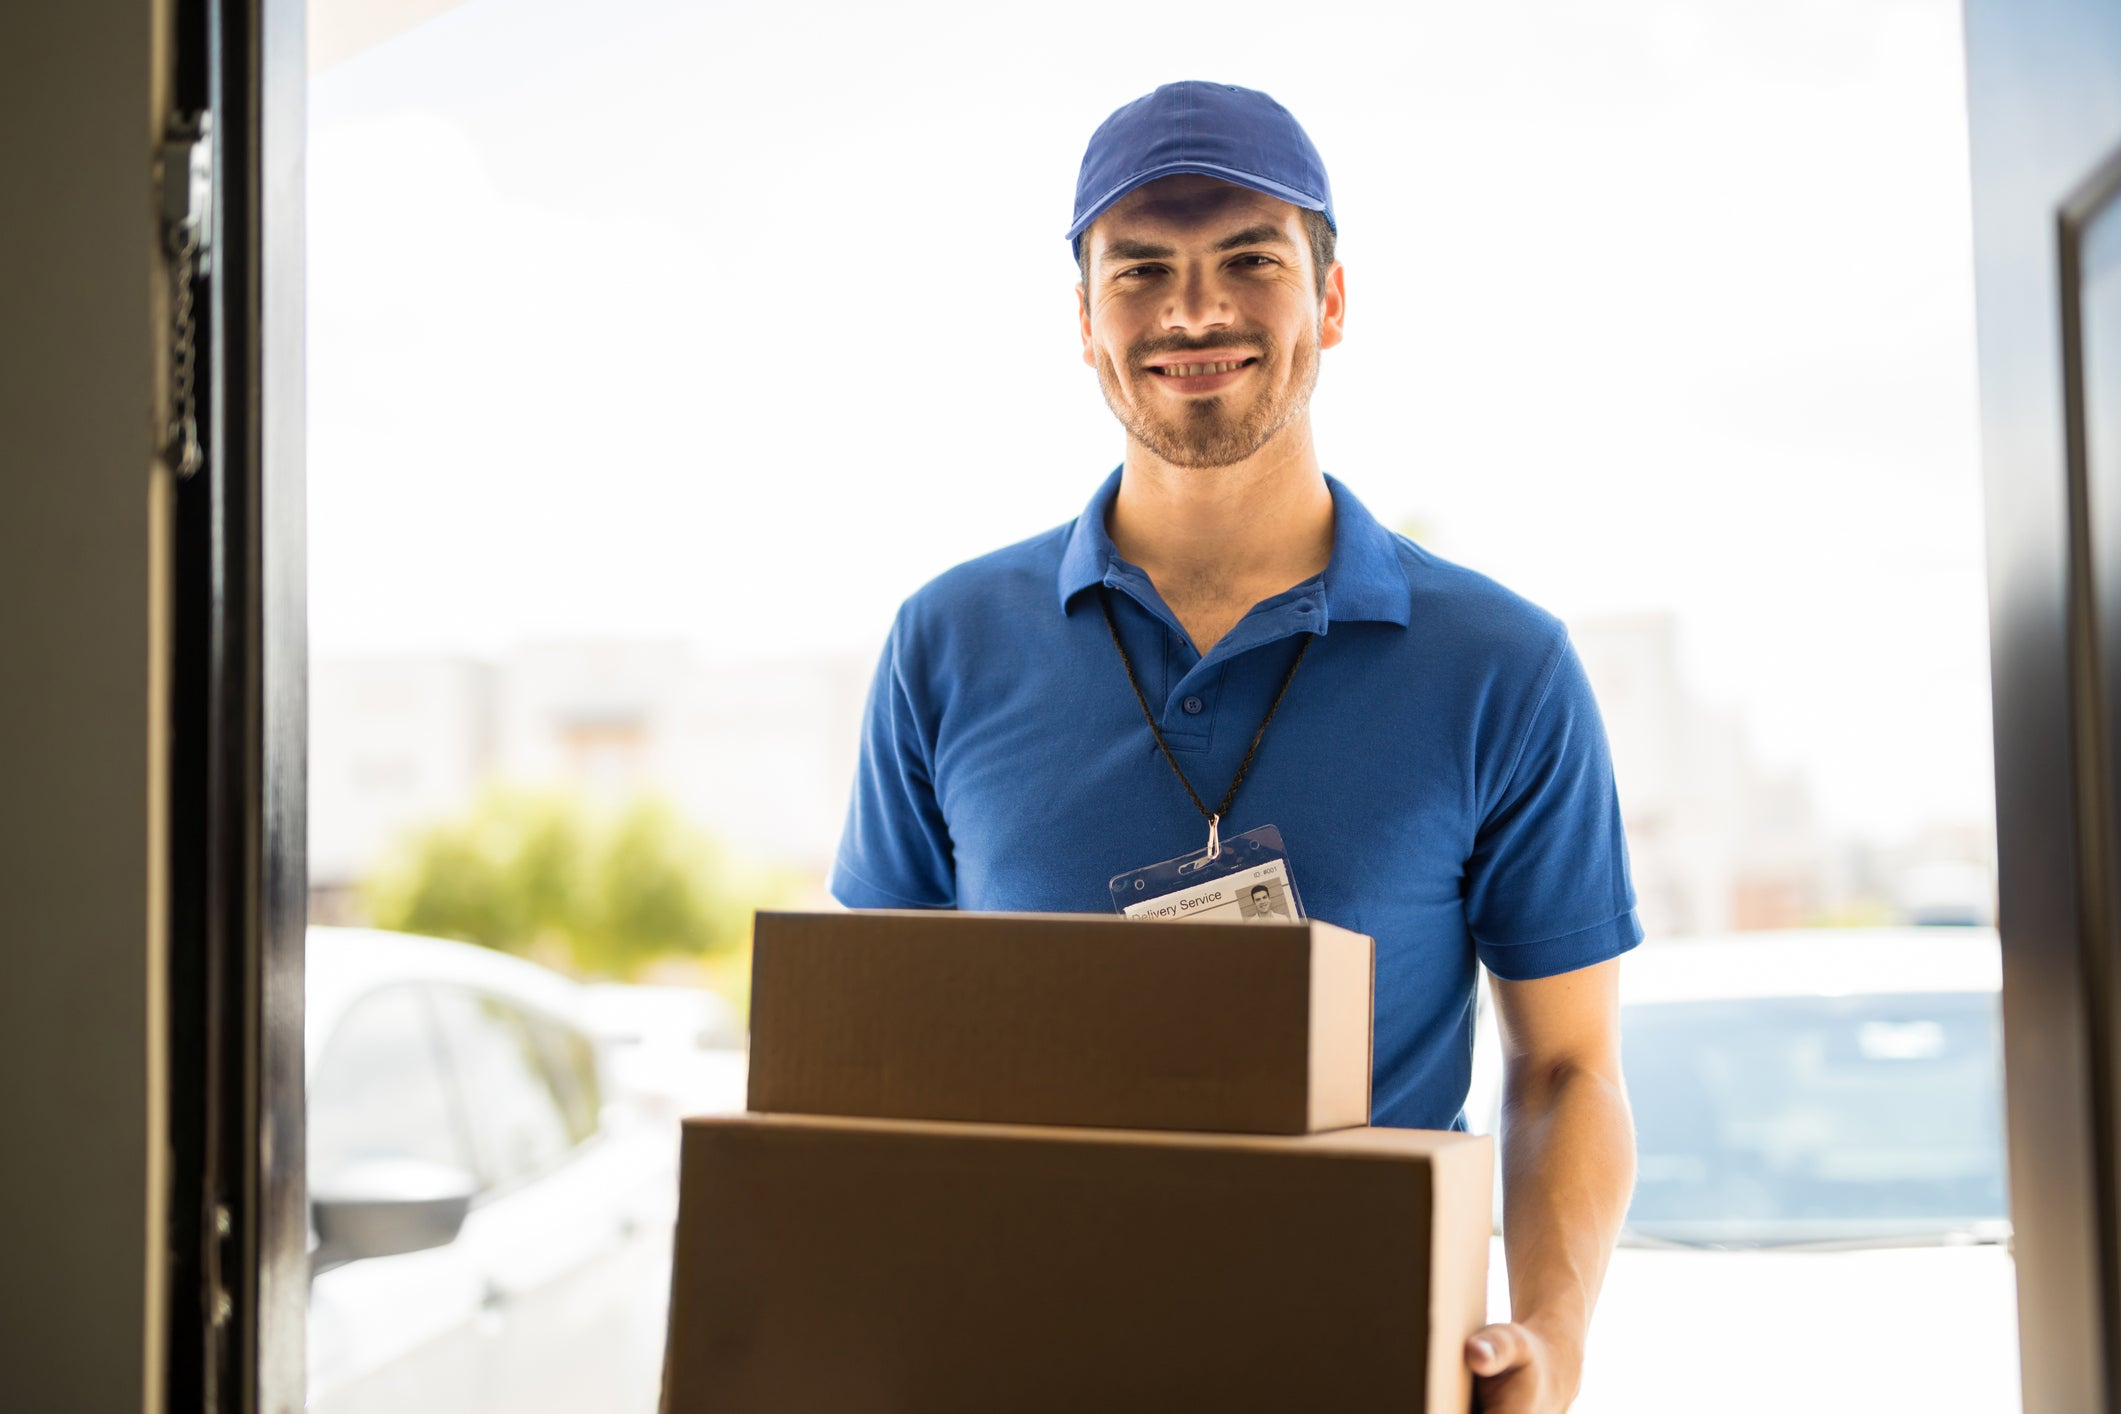 A delivery man smiles with packages in a doorway.